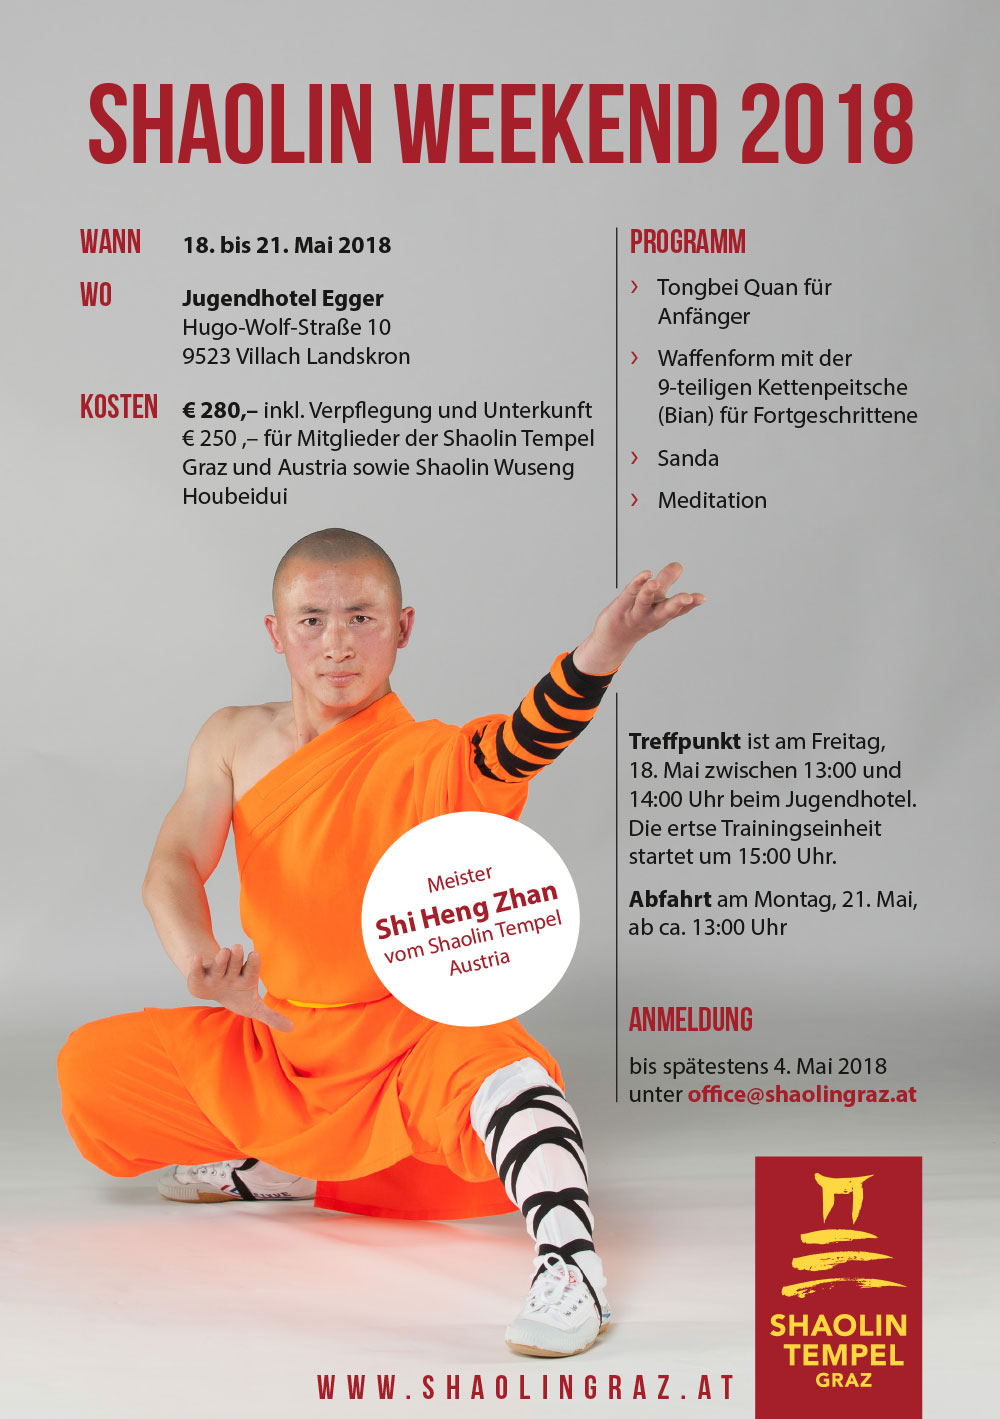 Shaolin Weekend 2018